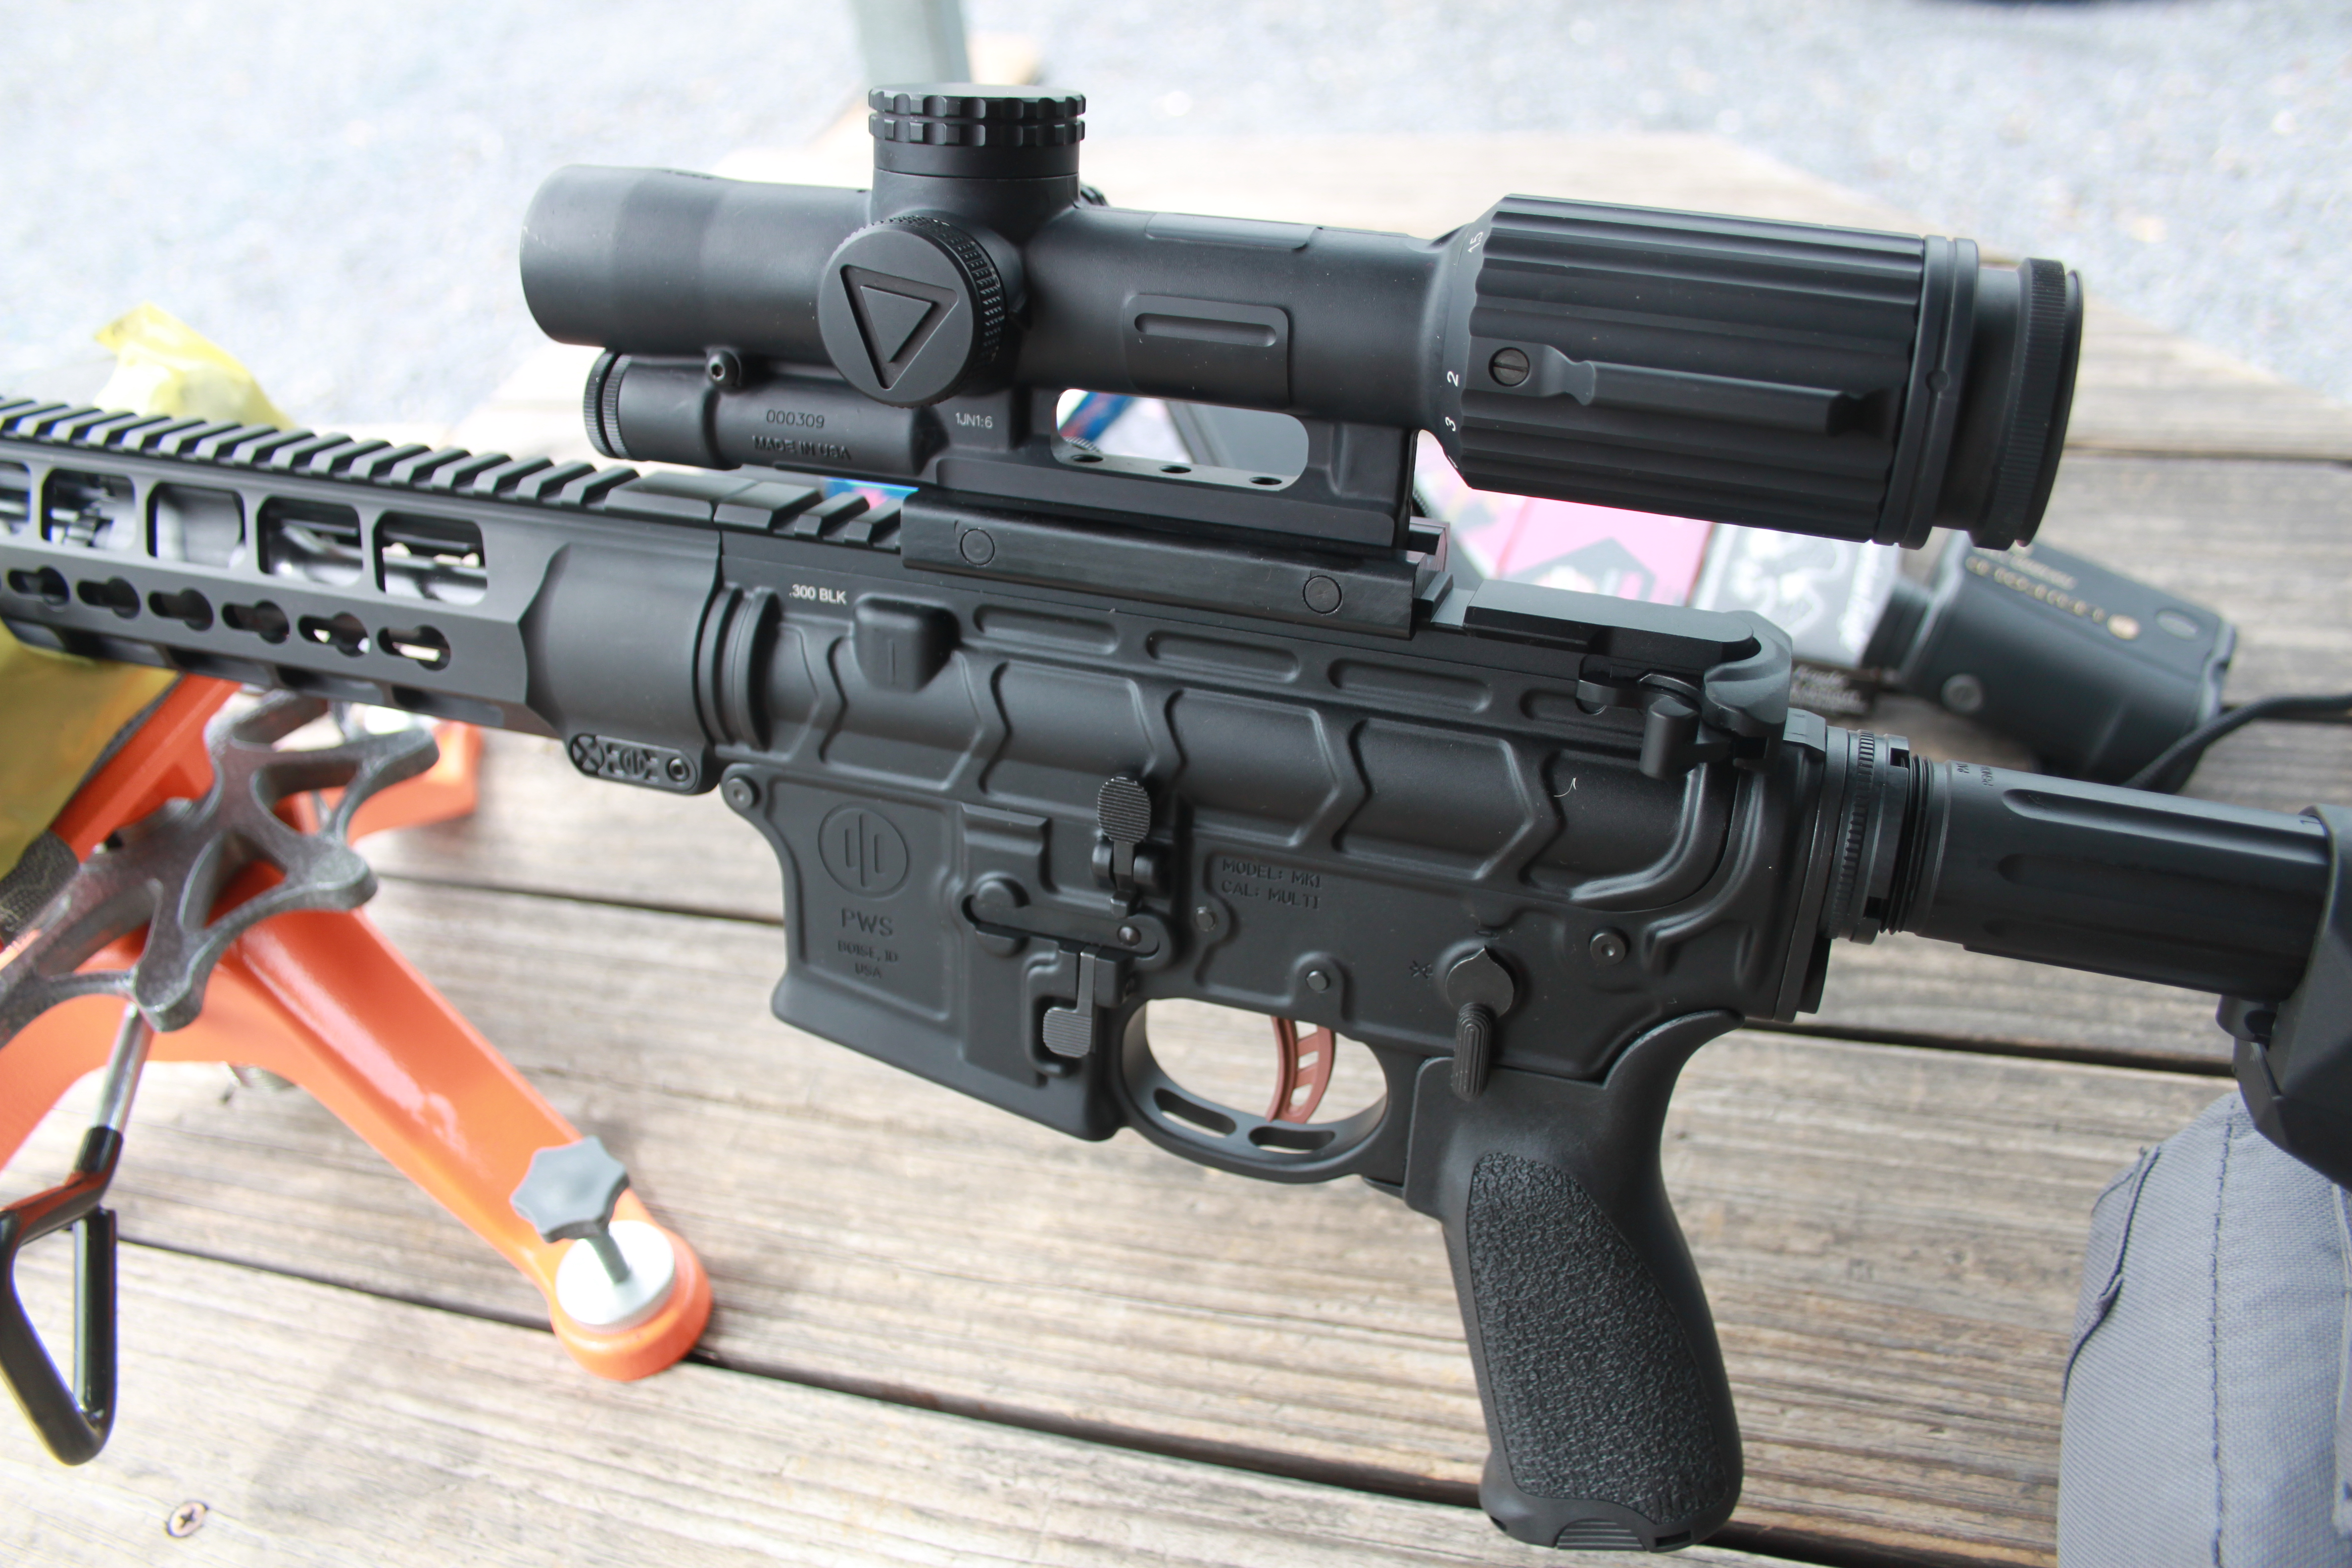 Next Evolution of the Piston AR: Primary Weapons Systems